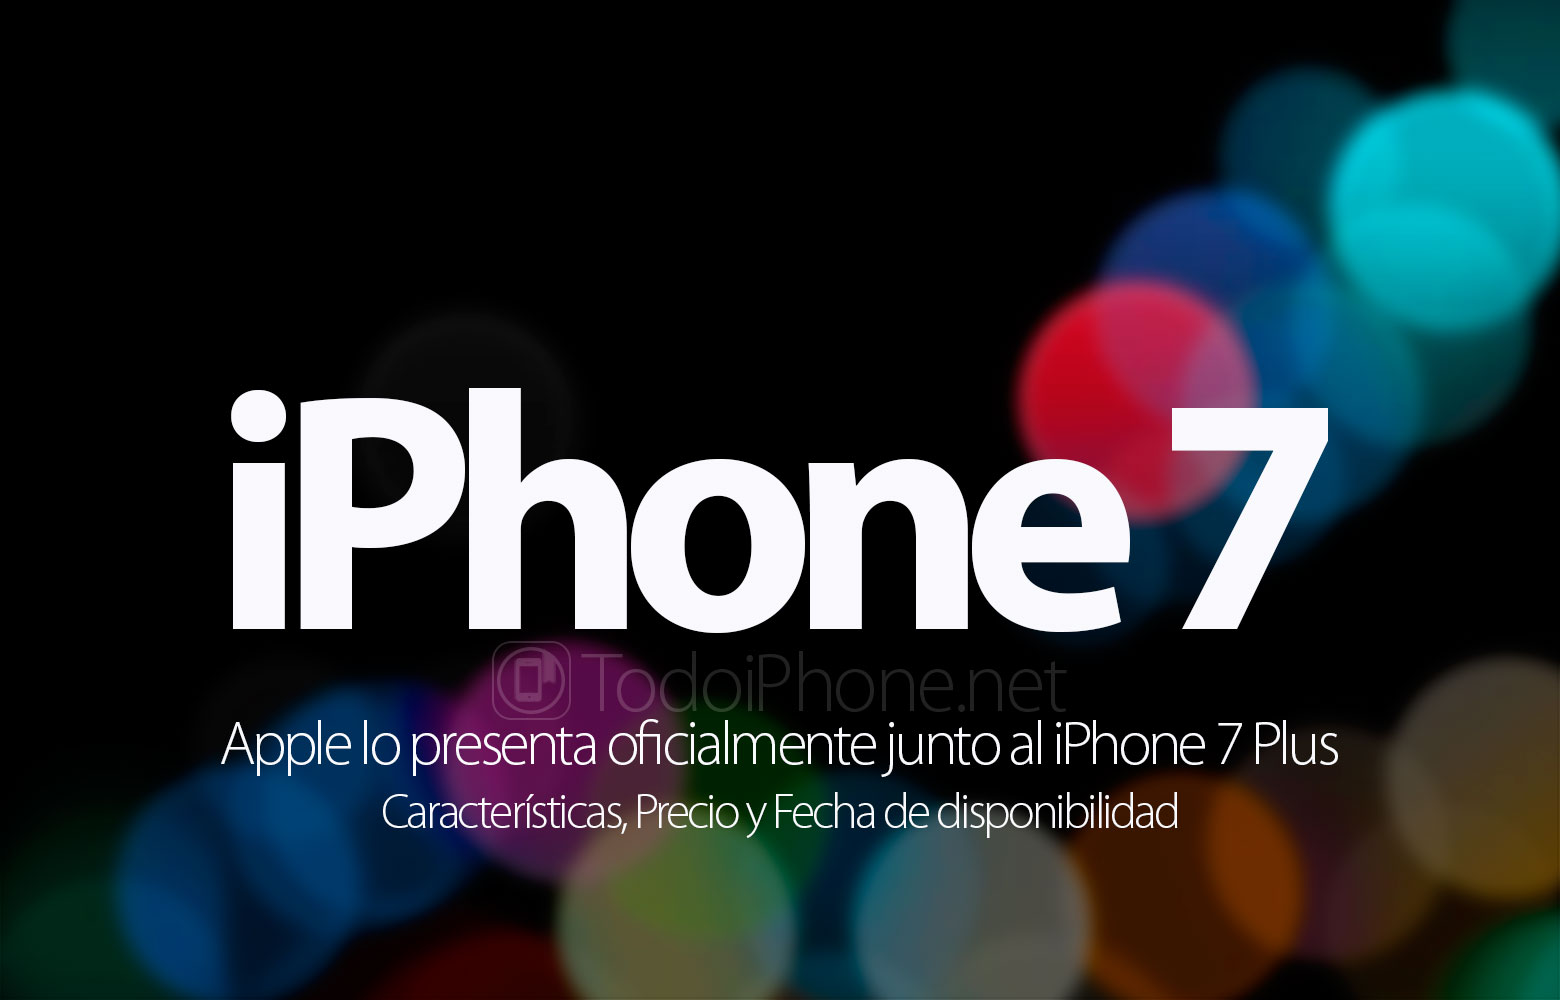 iphone-7-apple-presenta-oficial